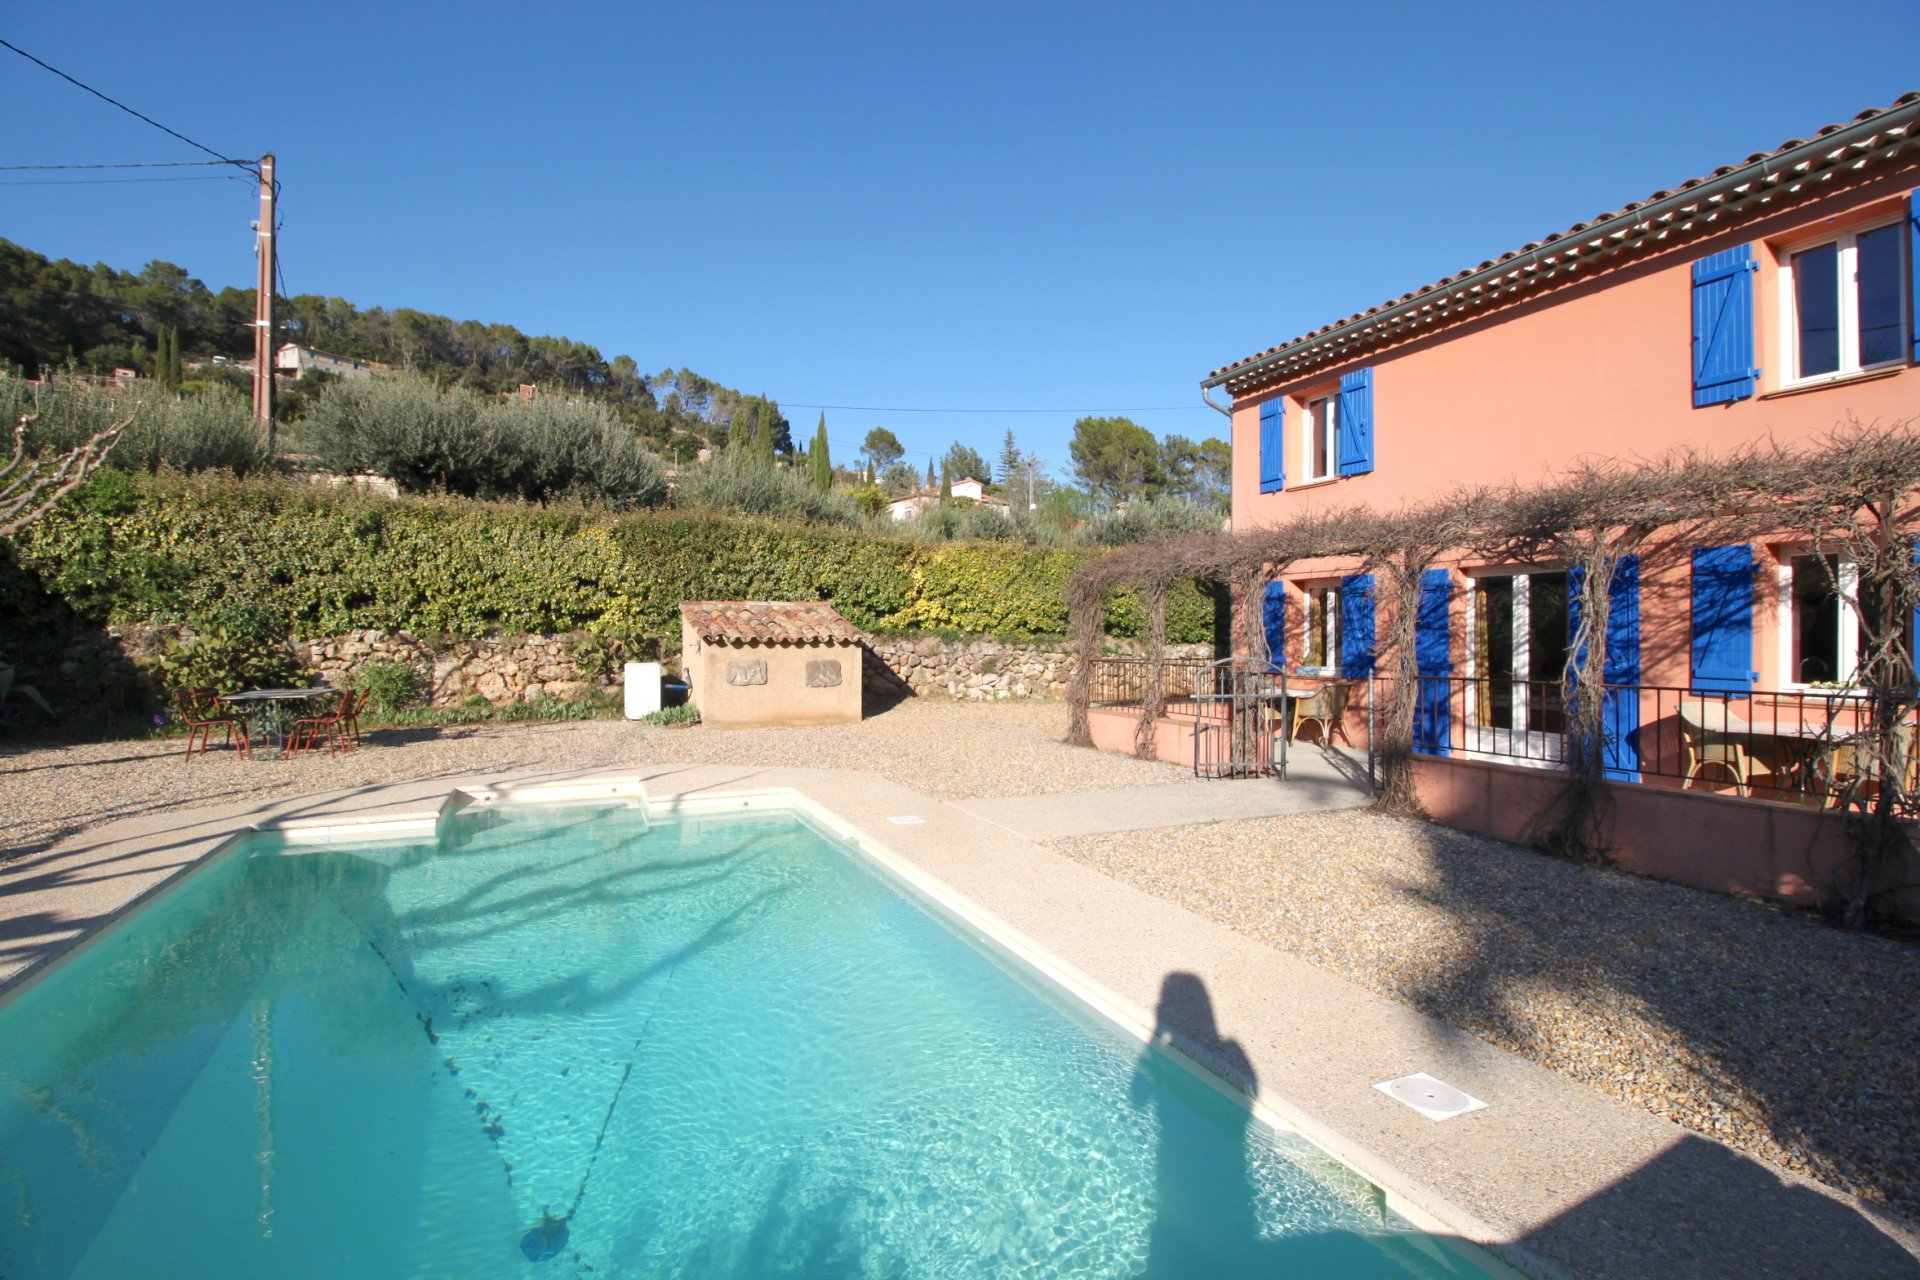 Jolie villa bien entretenue près du village, piscine et grand garage